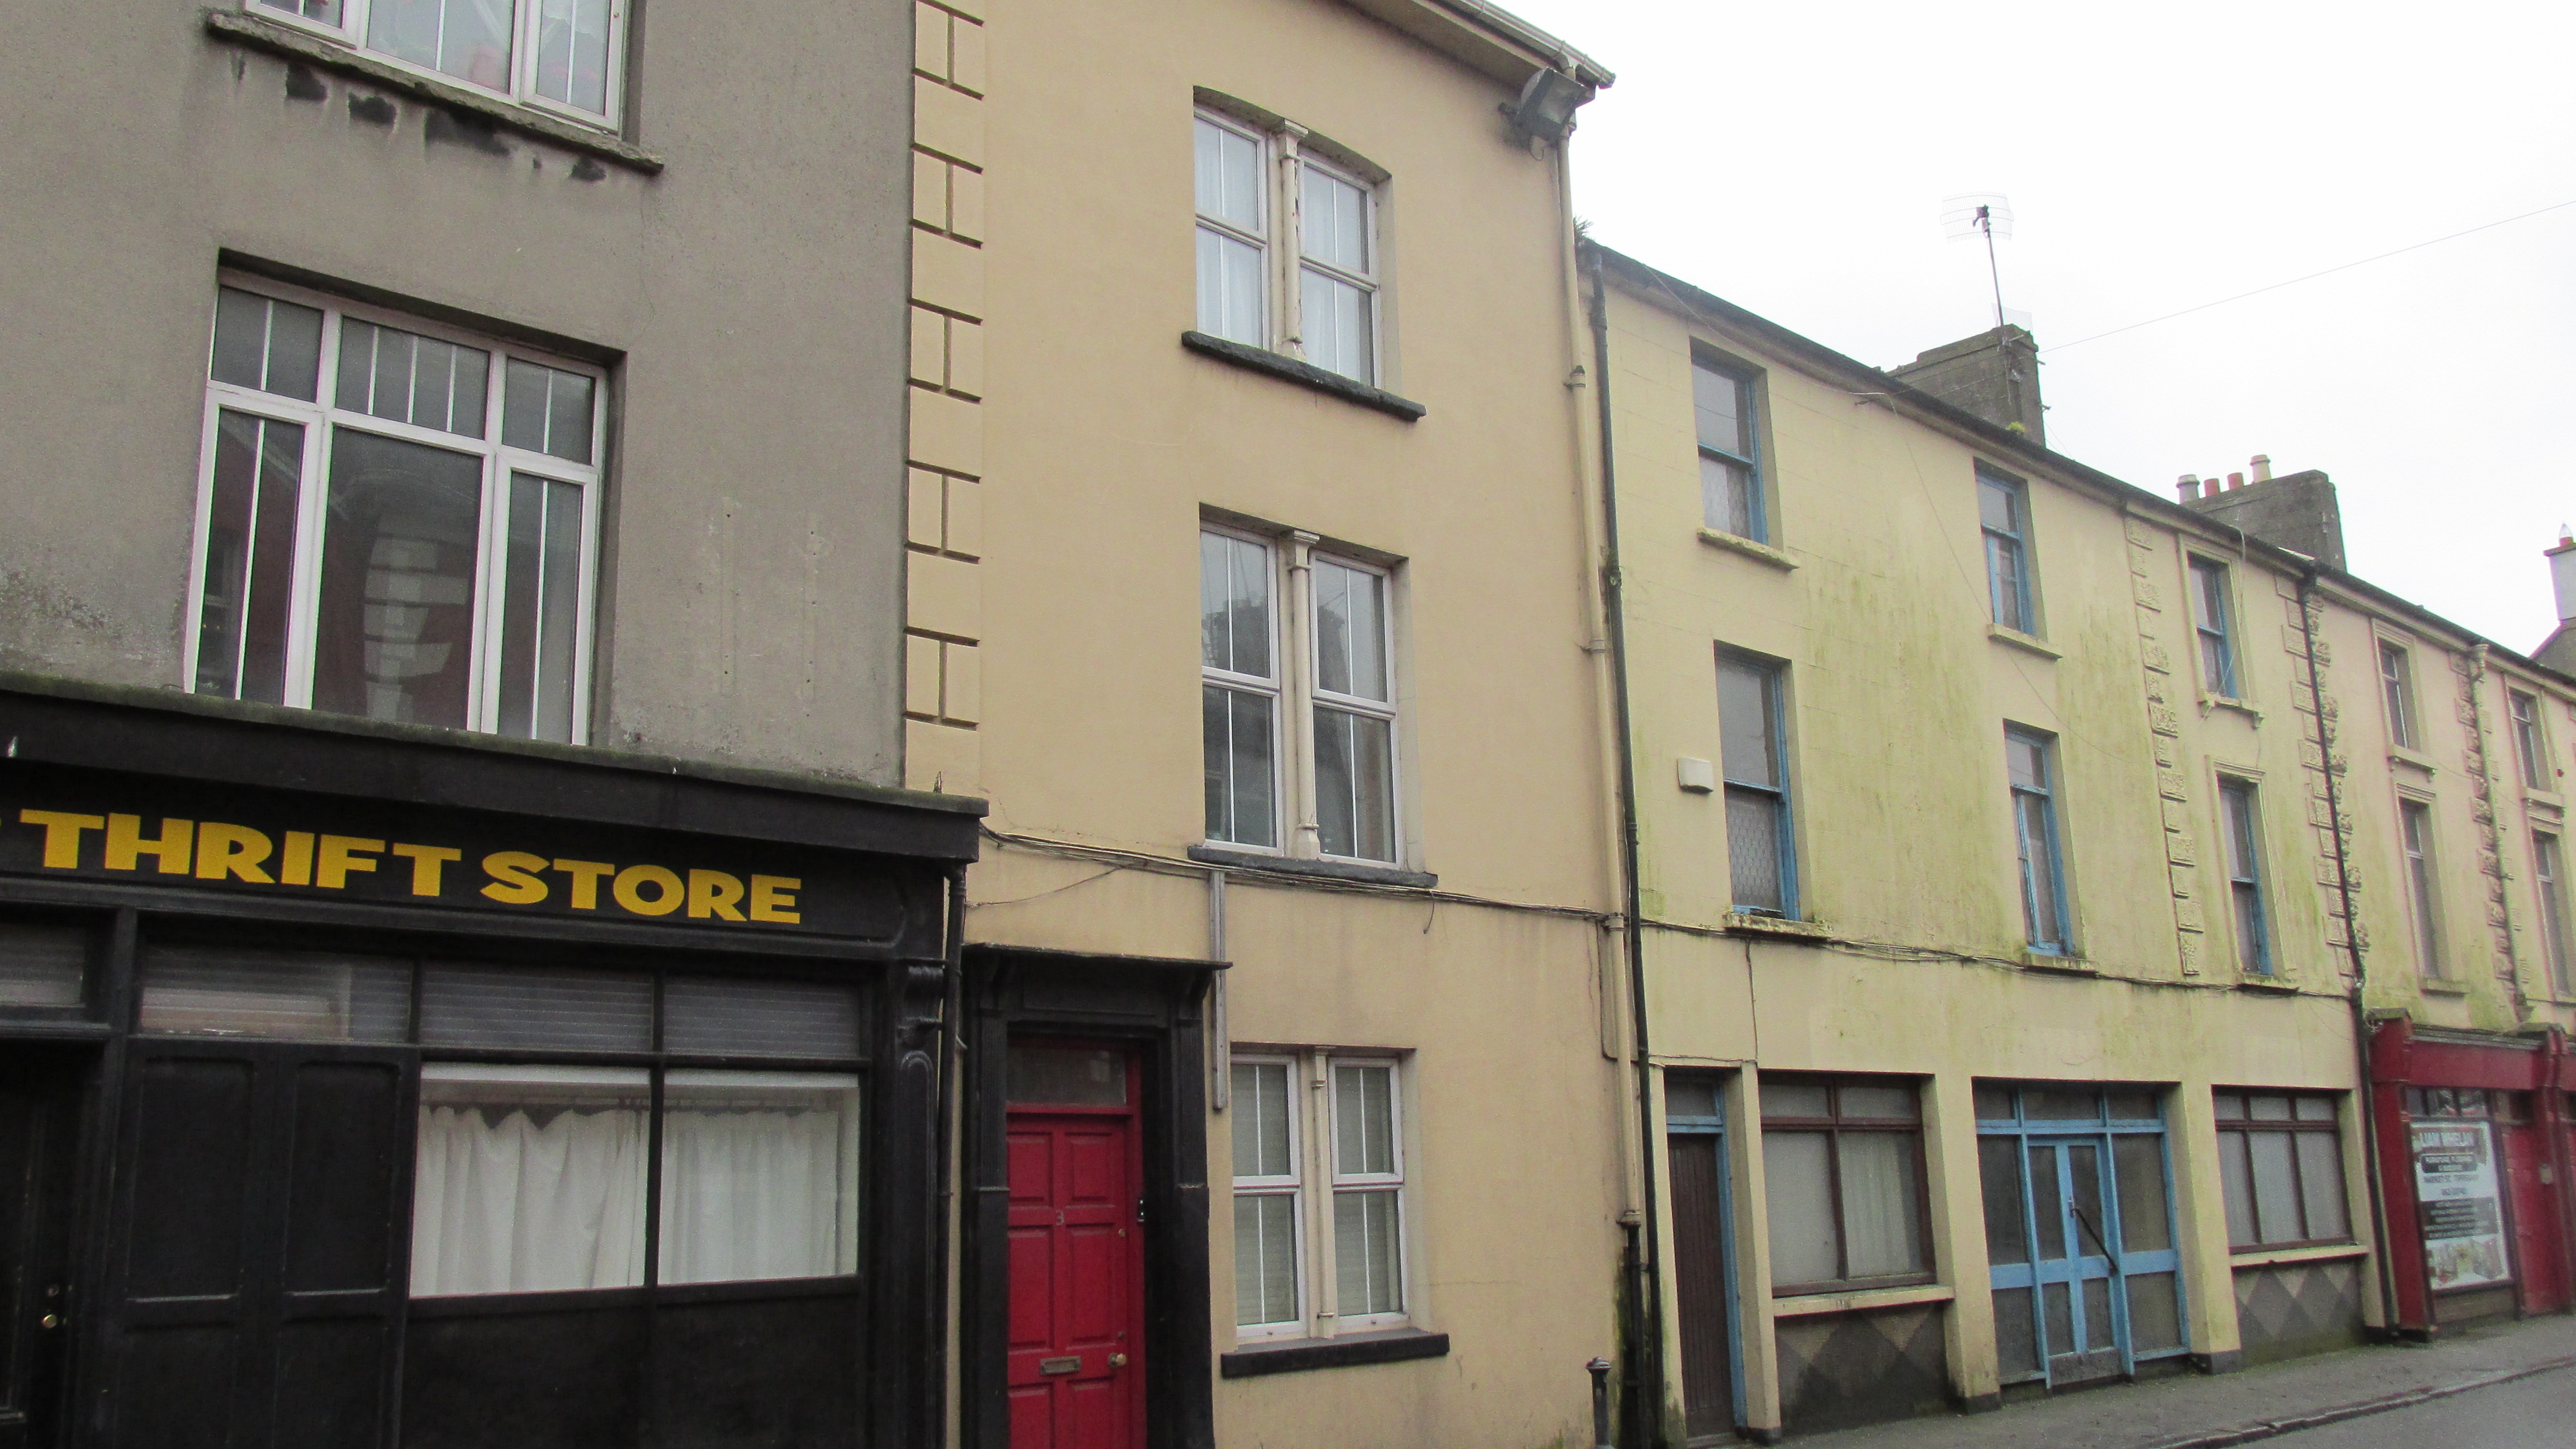 No 3 O'Brien St, Tipperary Town, Co. Tipperary